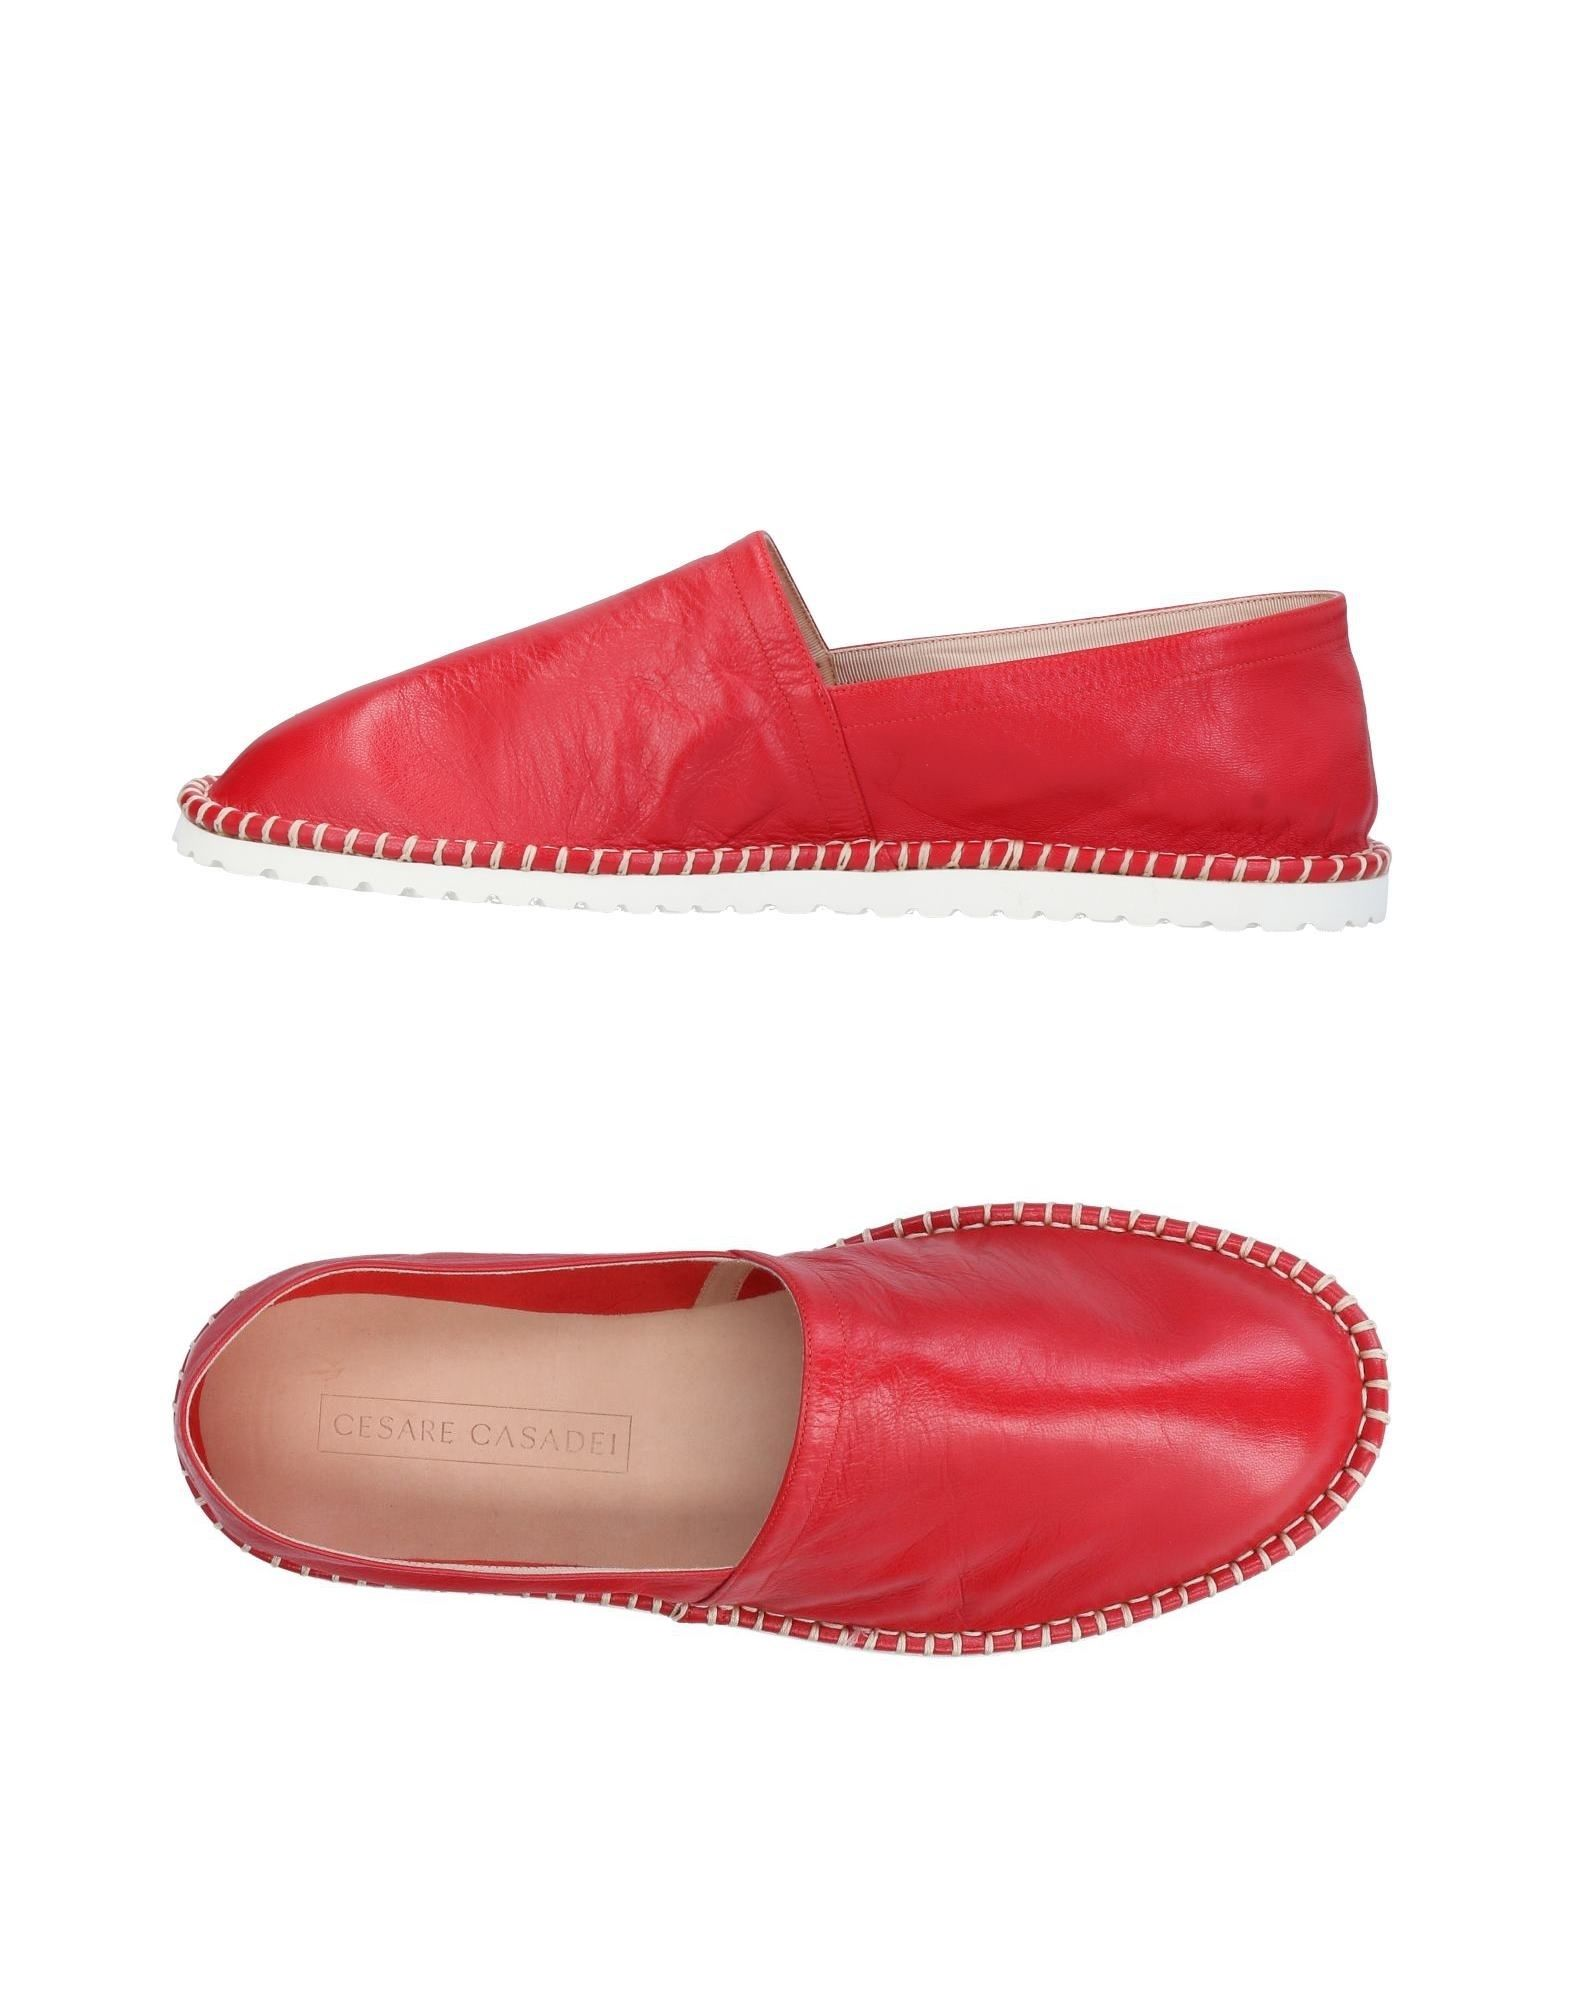 CESARE CASADEI Espadrilles in Red